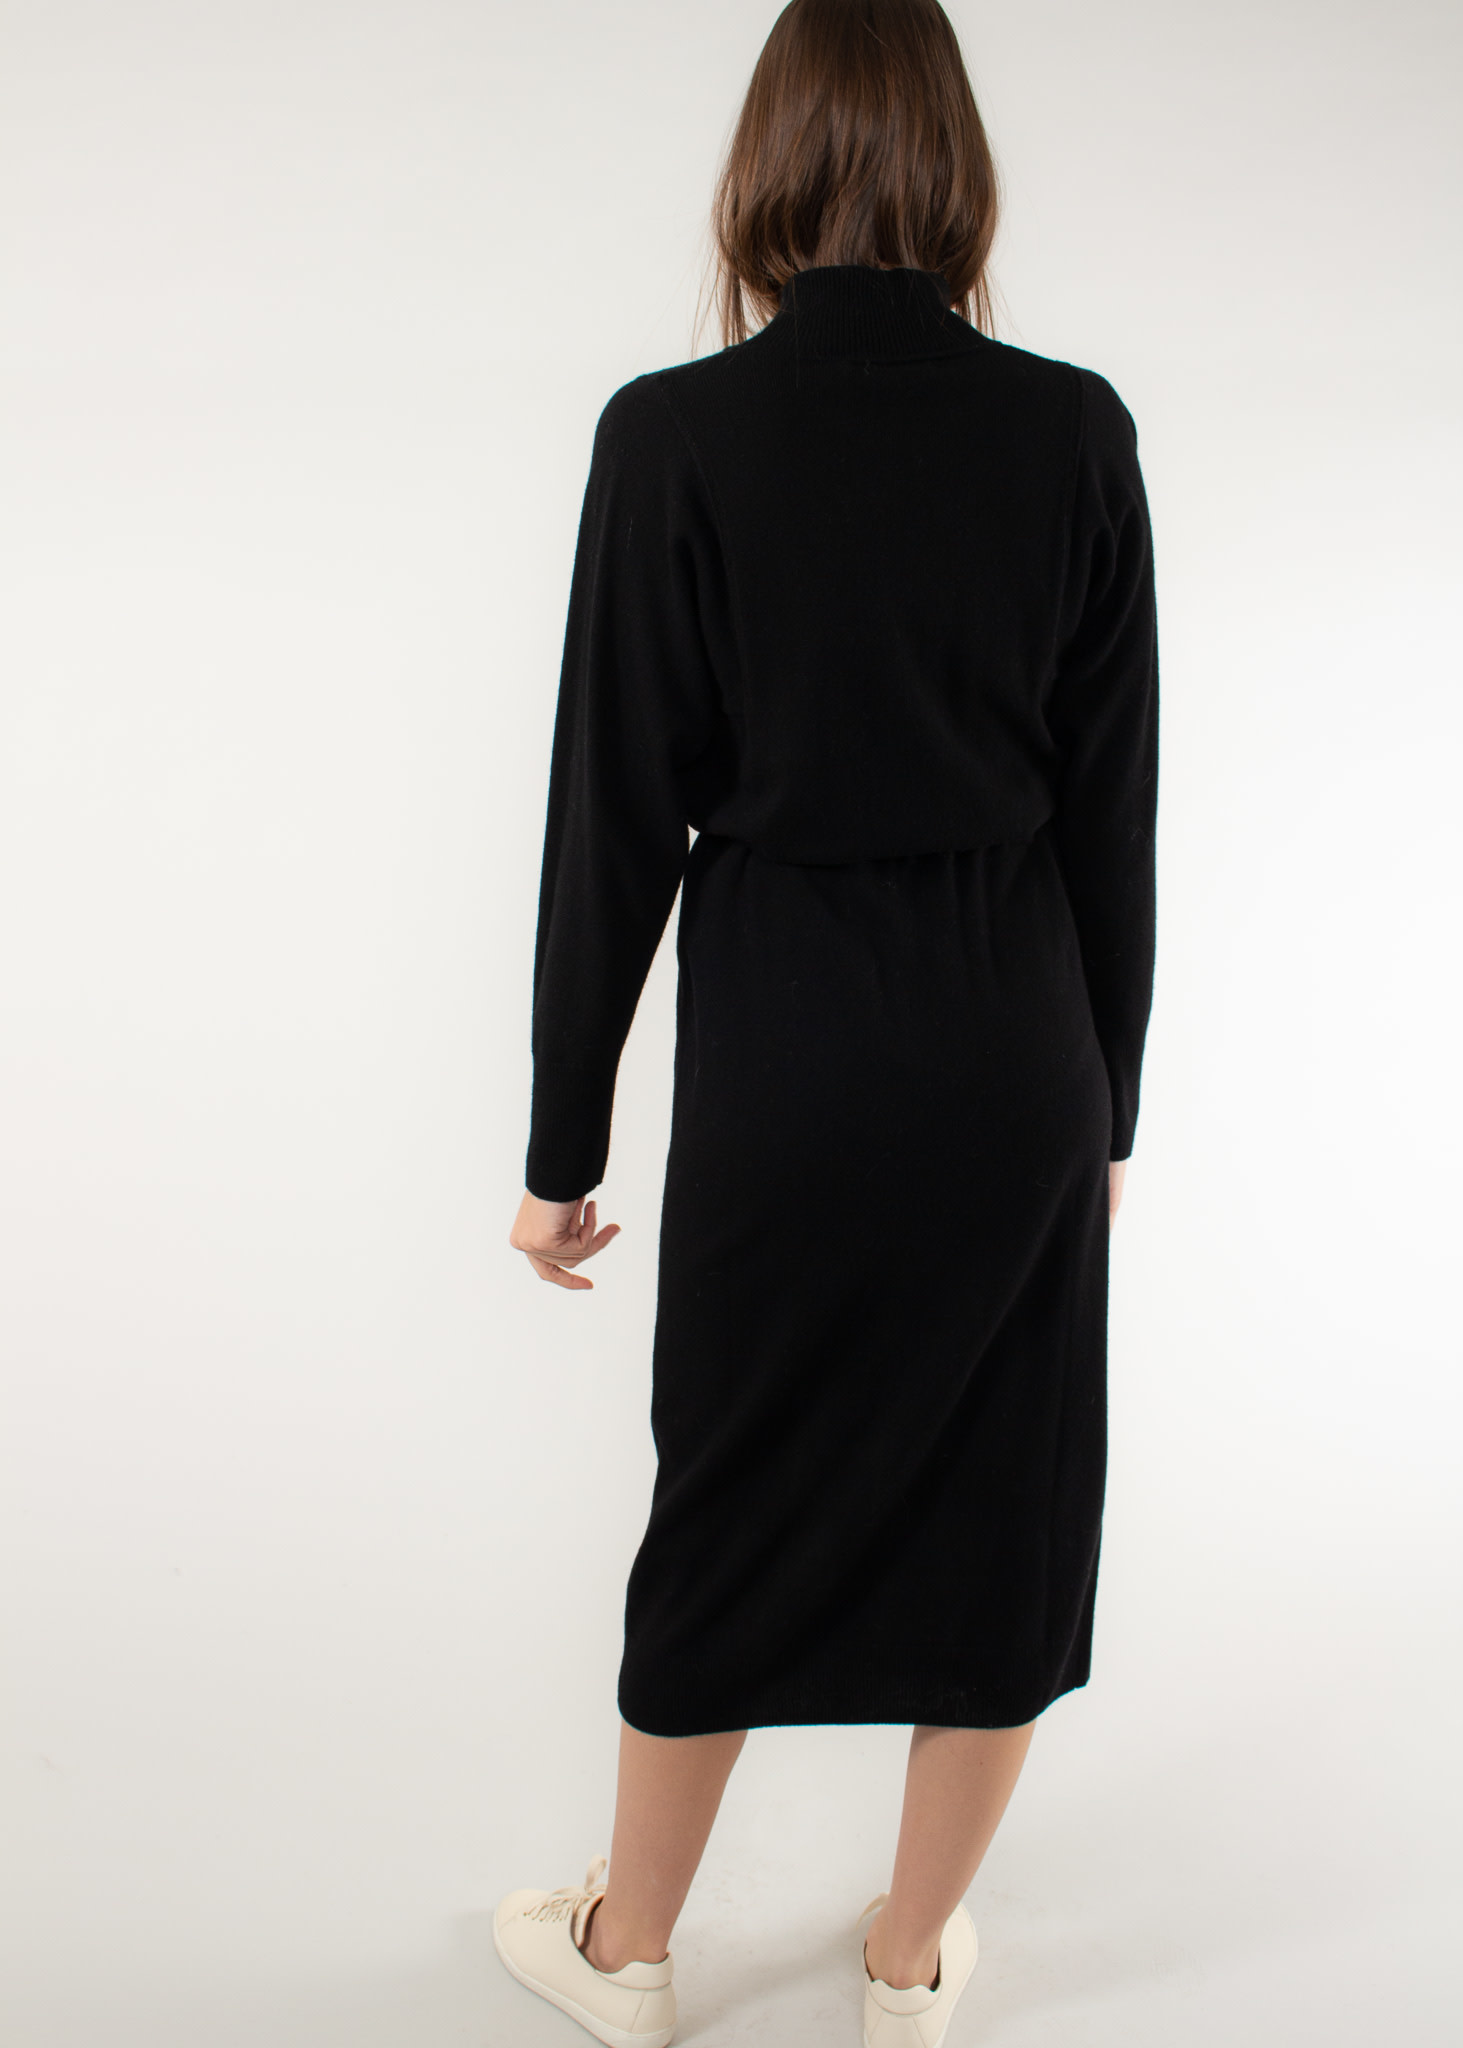 IN WEAR Iris dress black